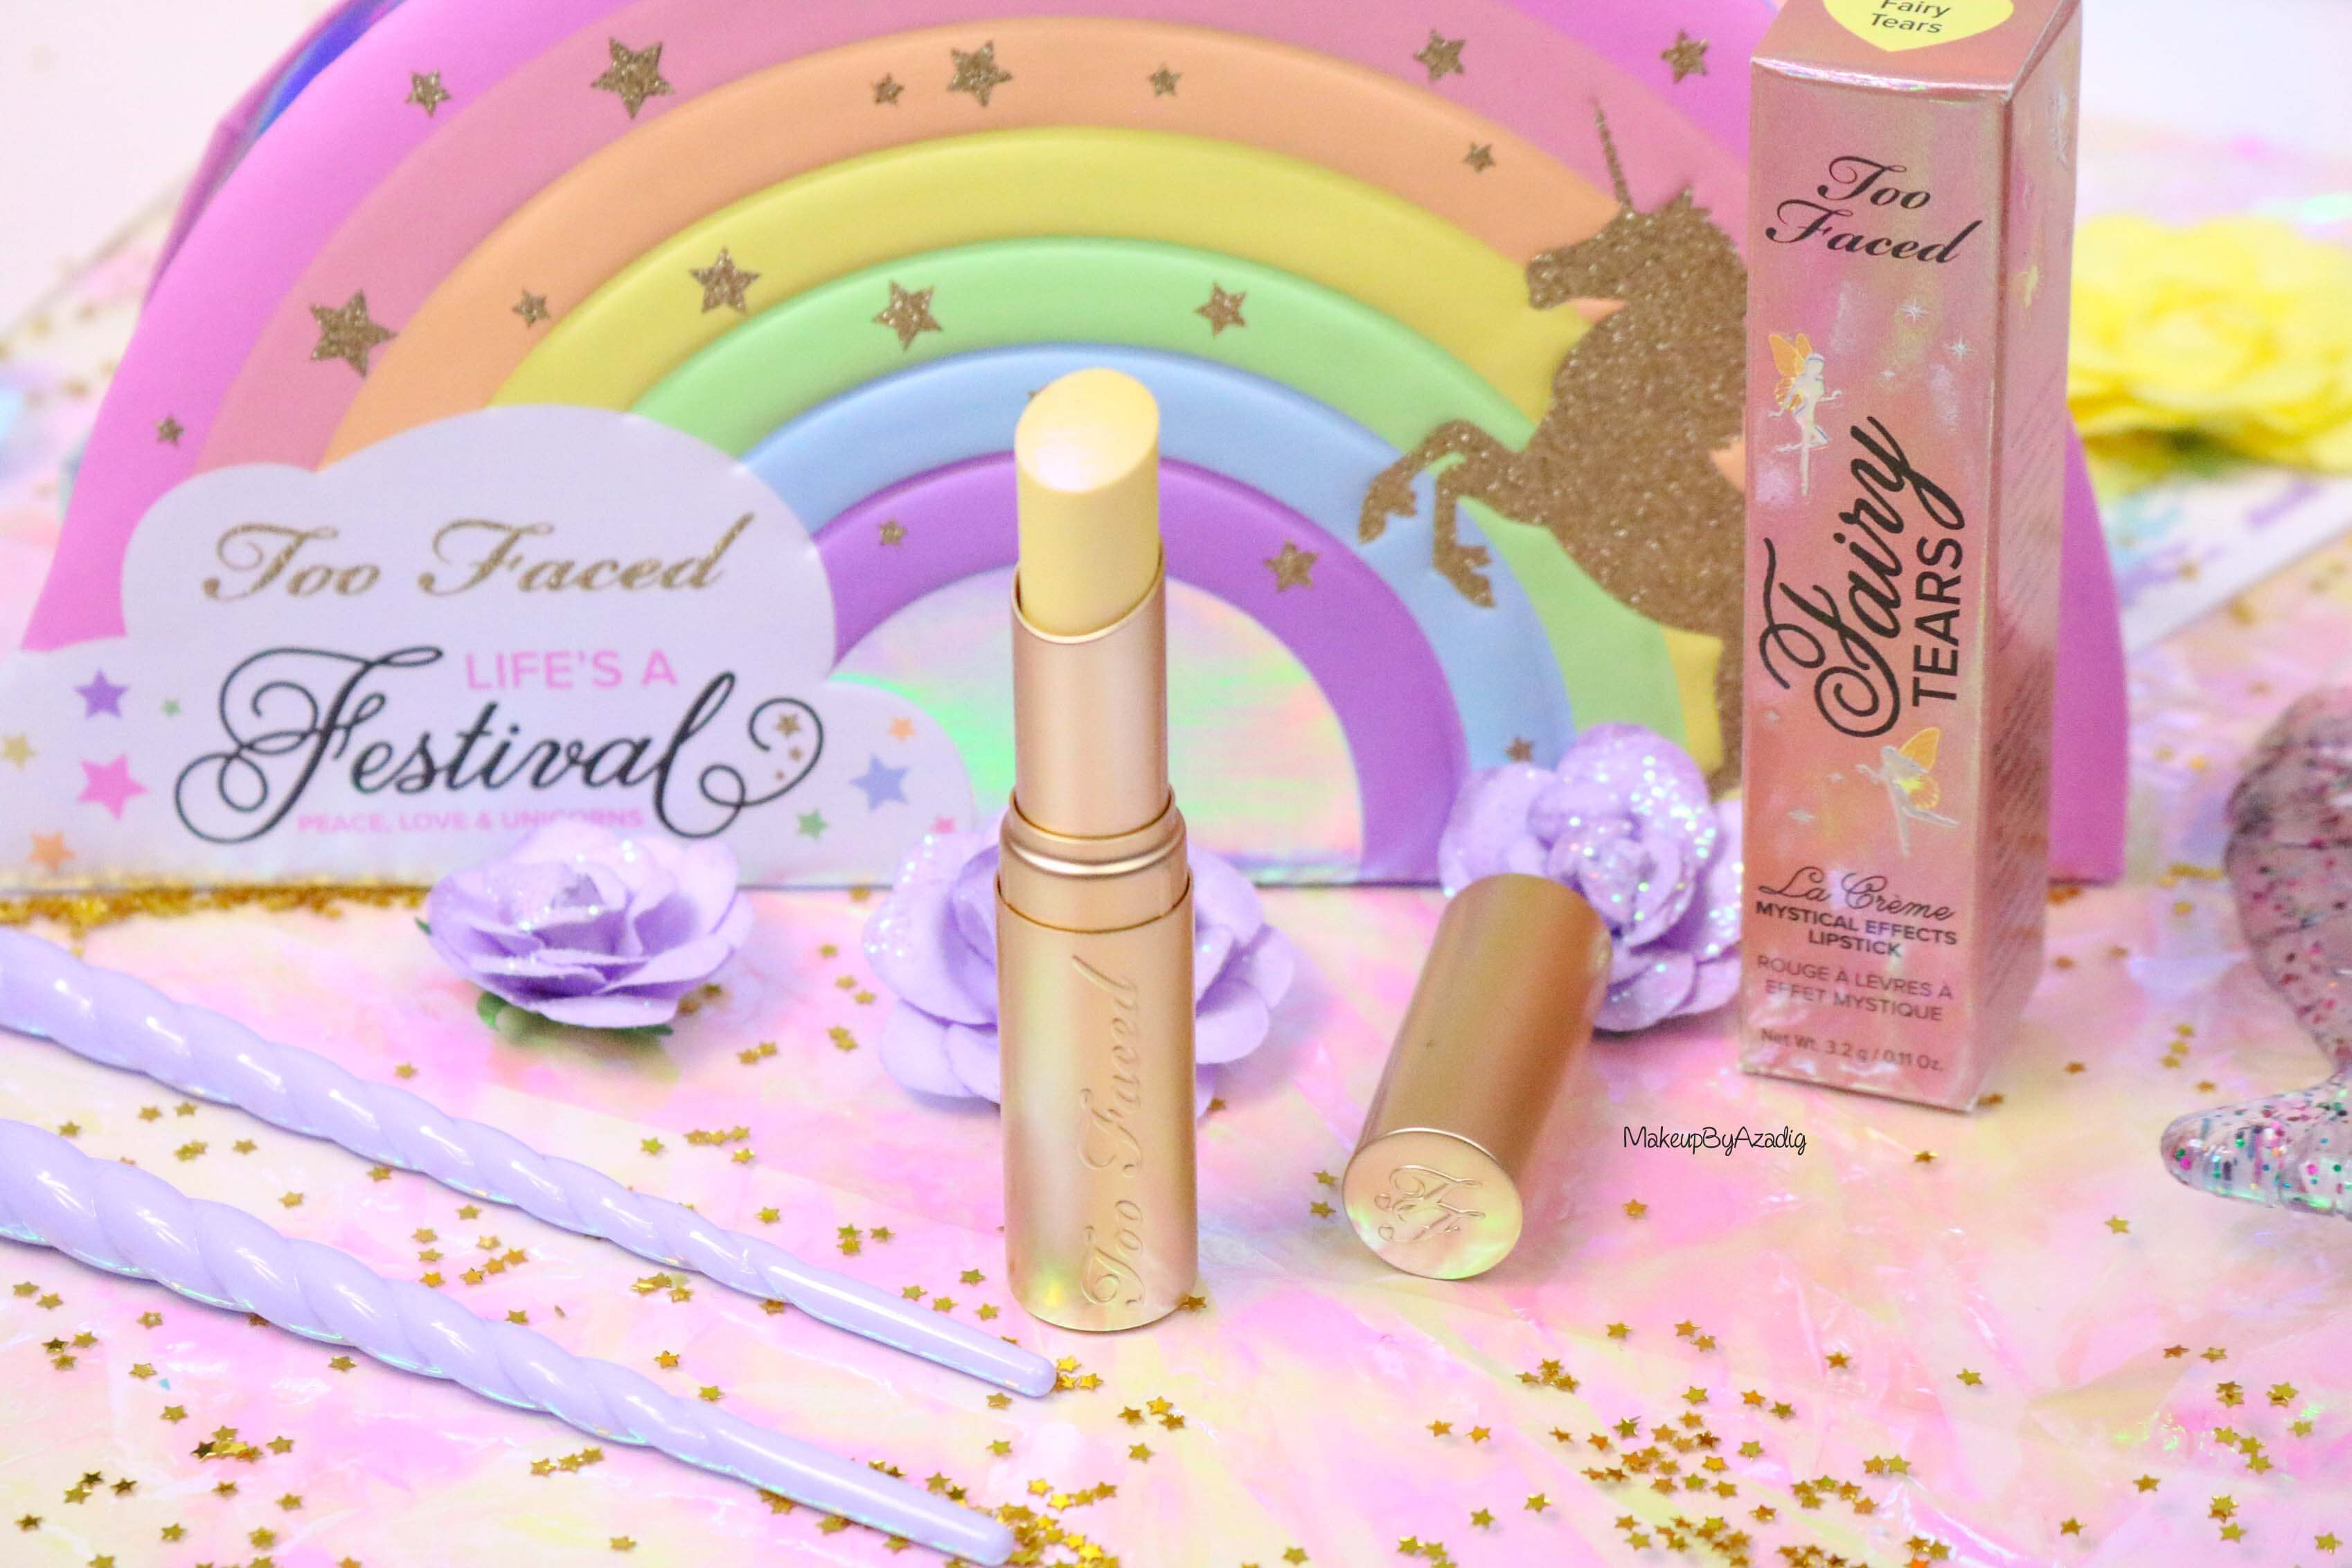 revue-review-mystical-lipstick-rouge-levres-magique-too-faced-avis-swatch-prix-france-makeupbyazadig-mermaid